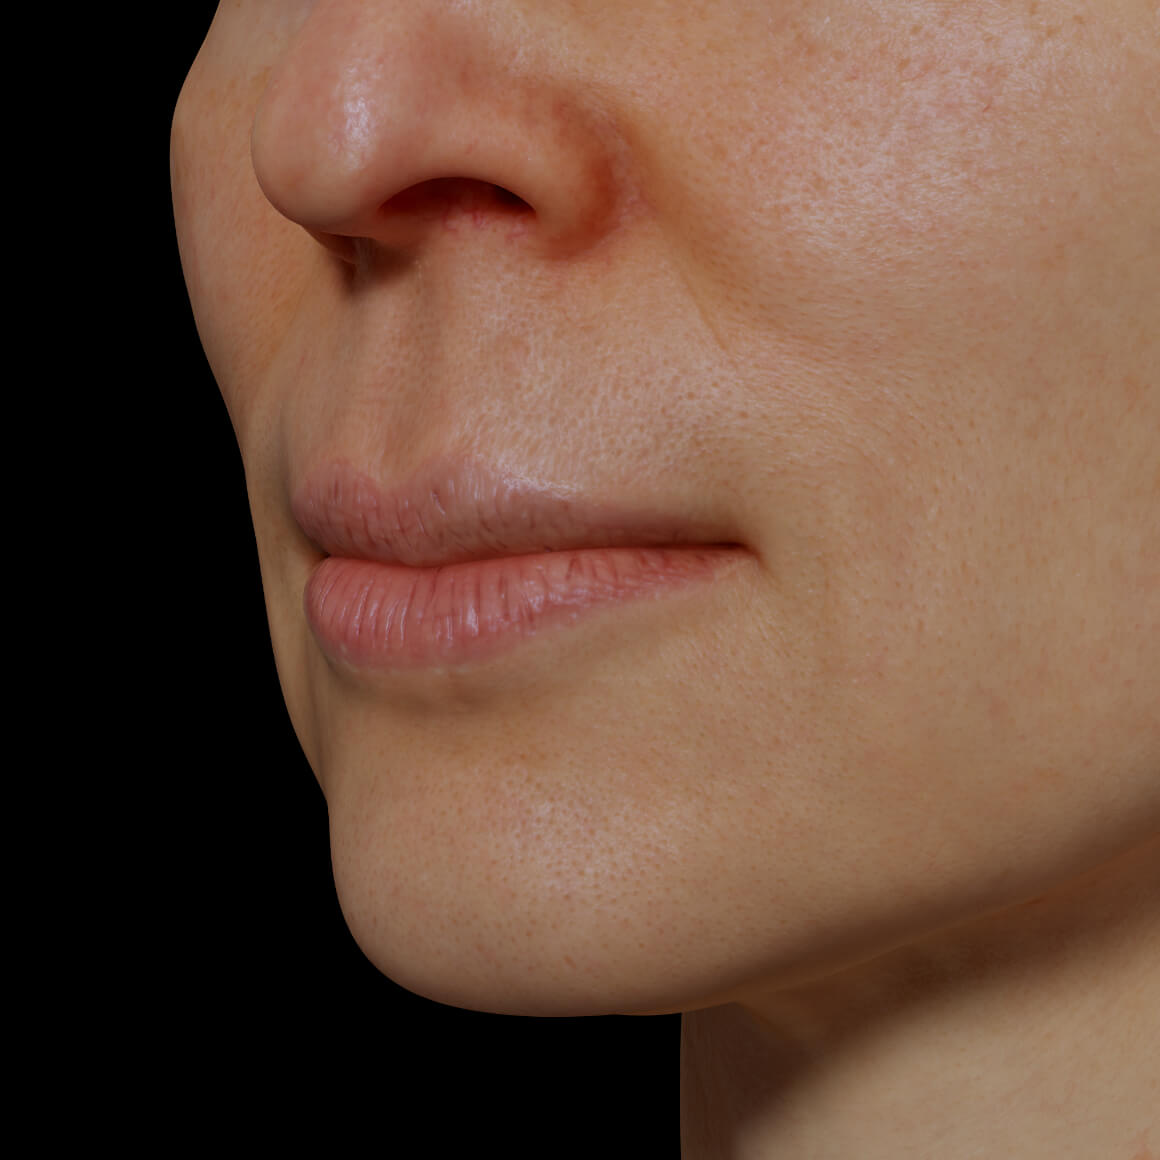 Angled female patient from the Clinique Chloé showing dry and dehydrated lips